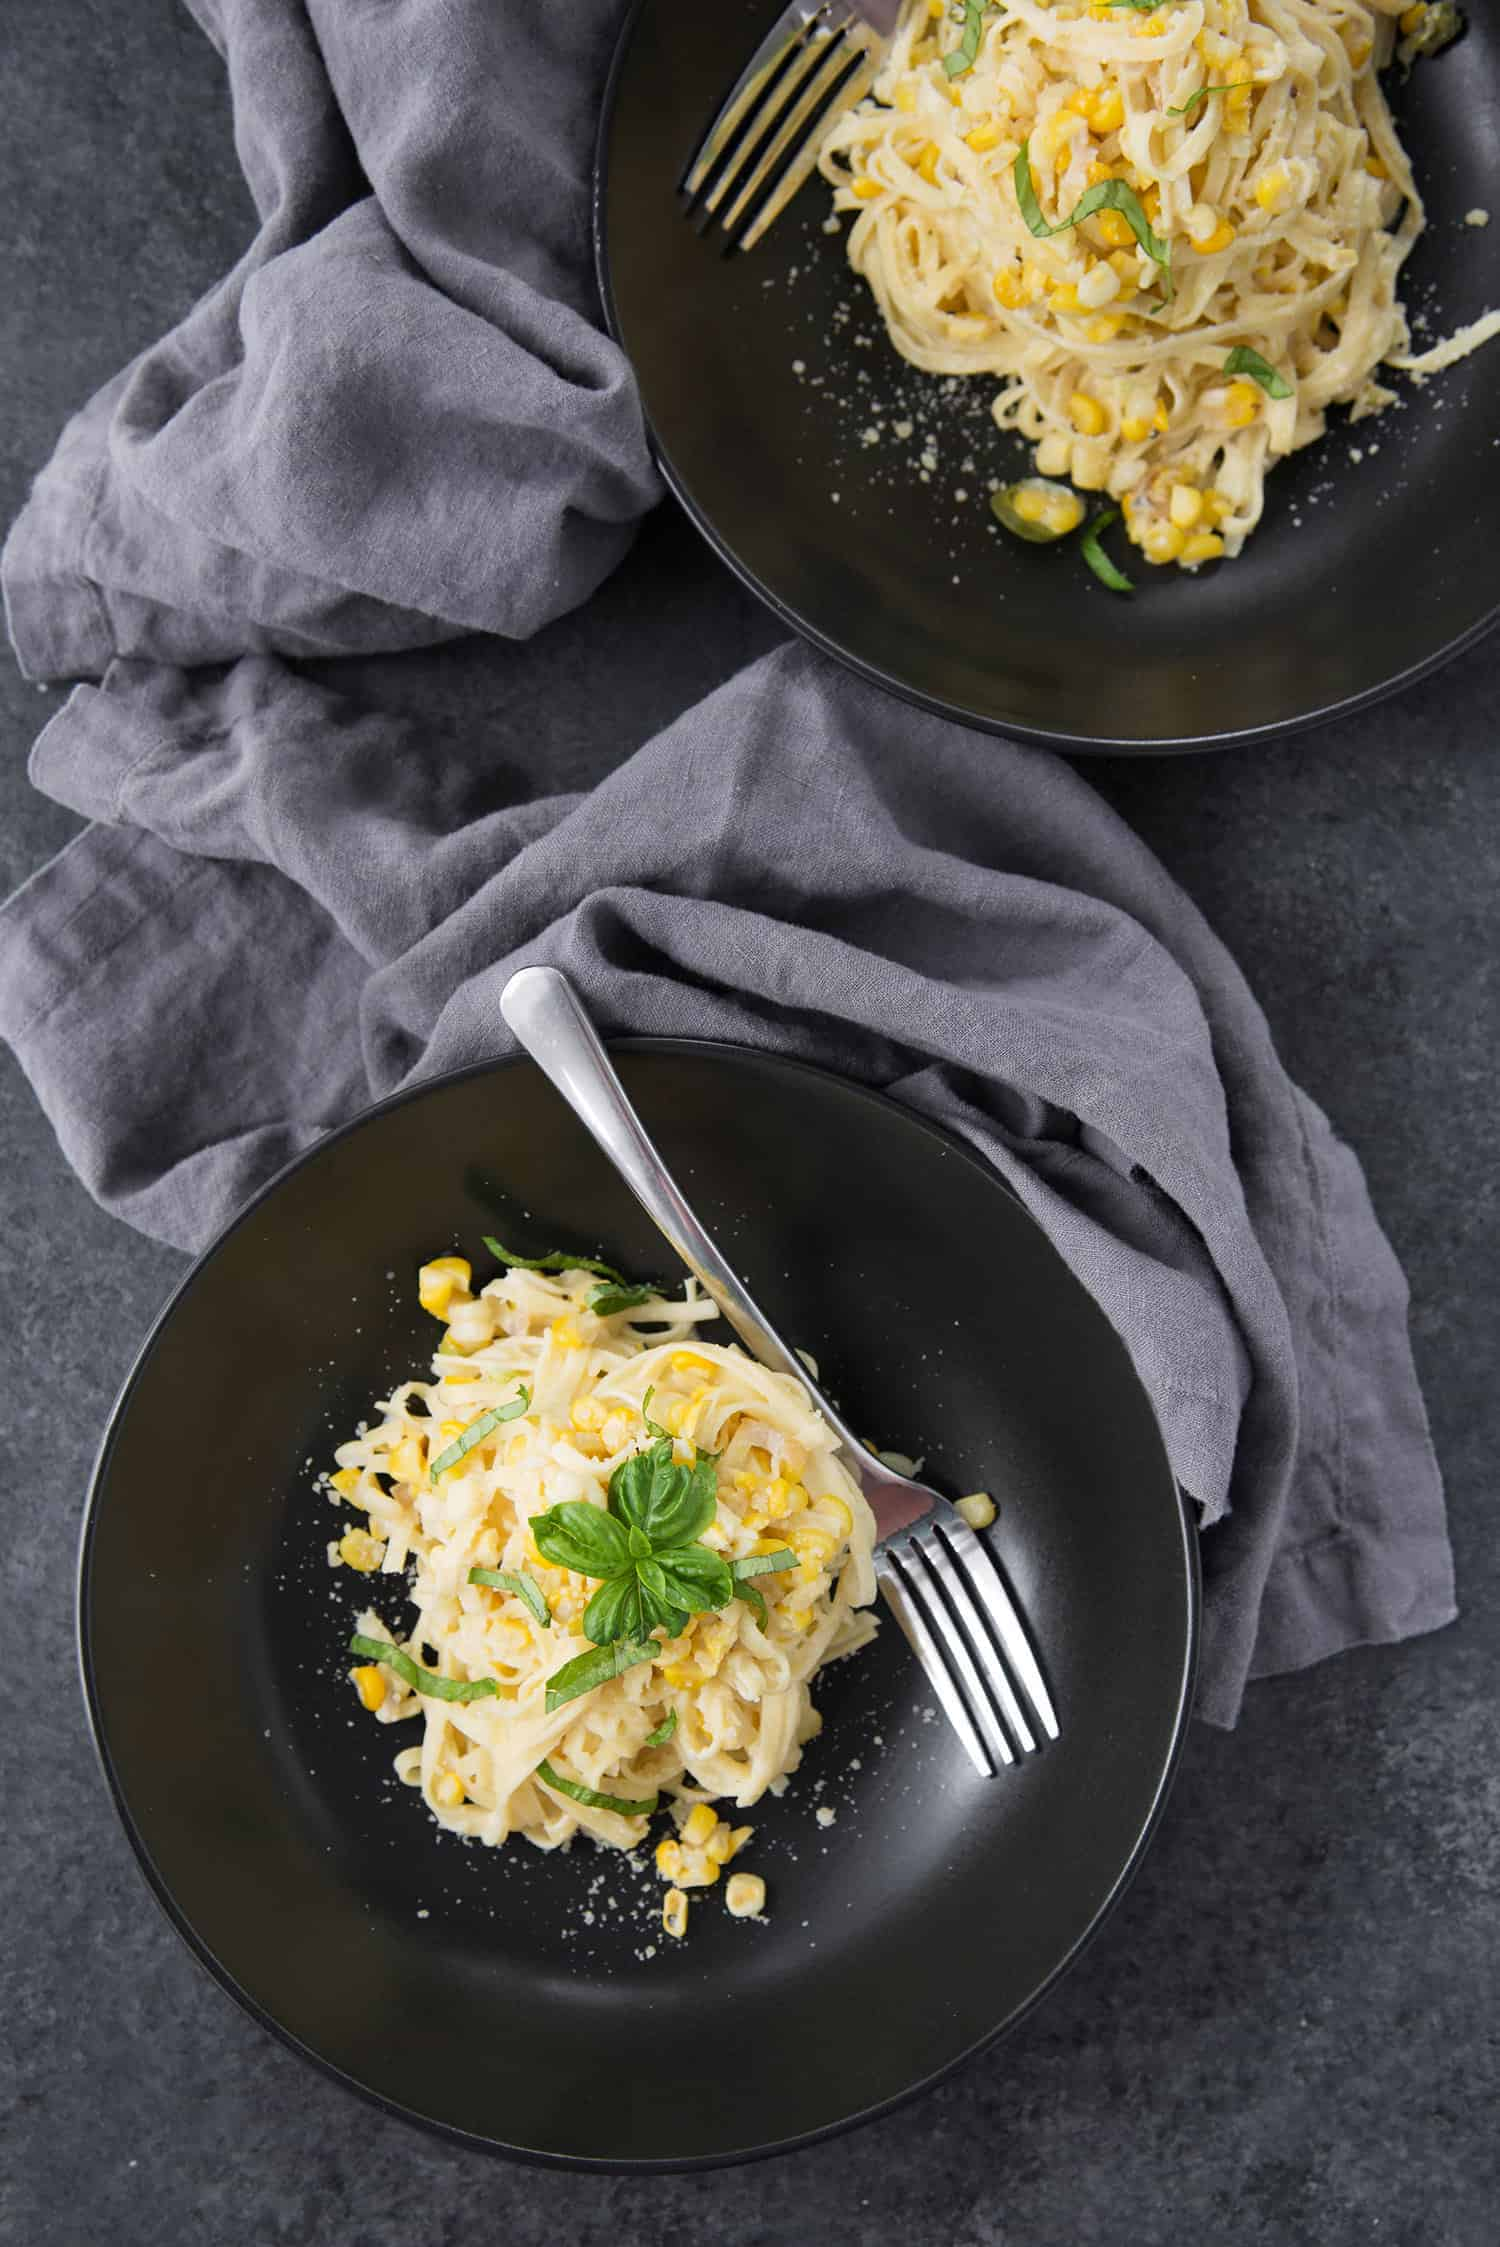 Spicy Corn Linguine! This is the perfect healthy farmer's market dinner. Corn with fresh pasta in a light sauce.   www.delishknowledge.com